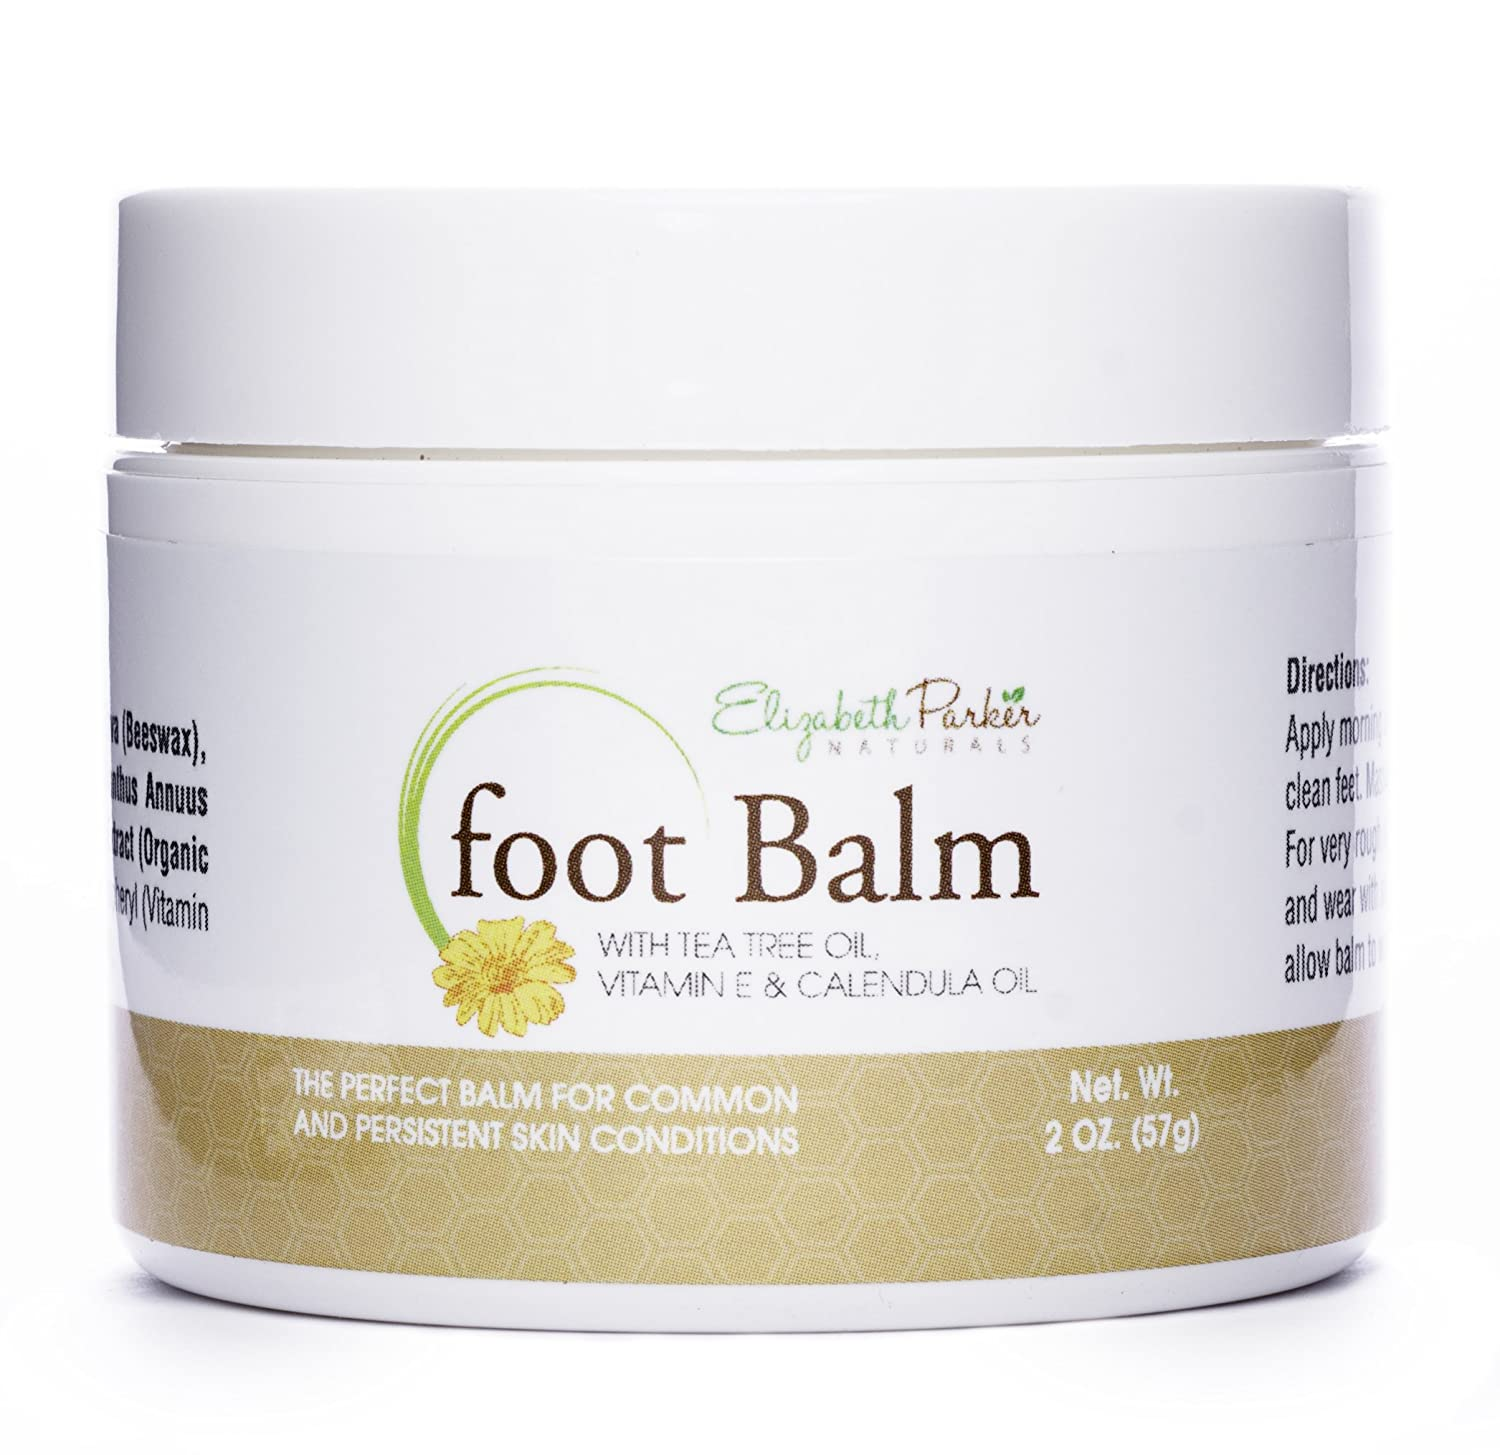 Foot Balm for Dry Cracked Feet and Heels with Tea Tree Oil - For Men and Women - All Natural Ingredients 2oz Elizabeth Parker Naturals